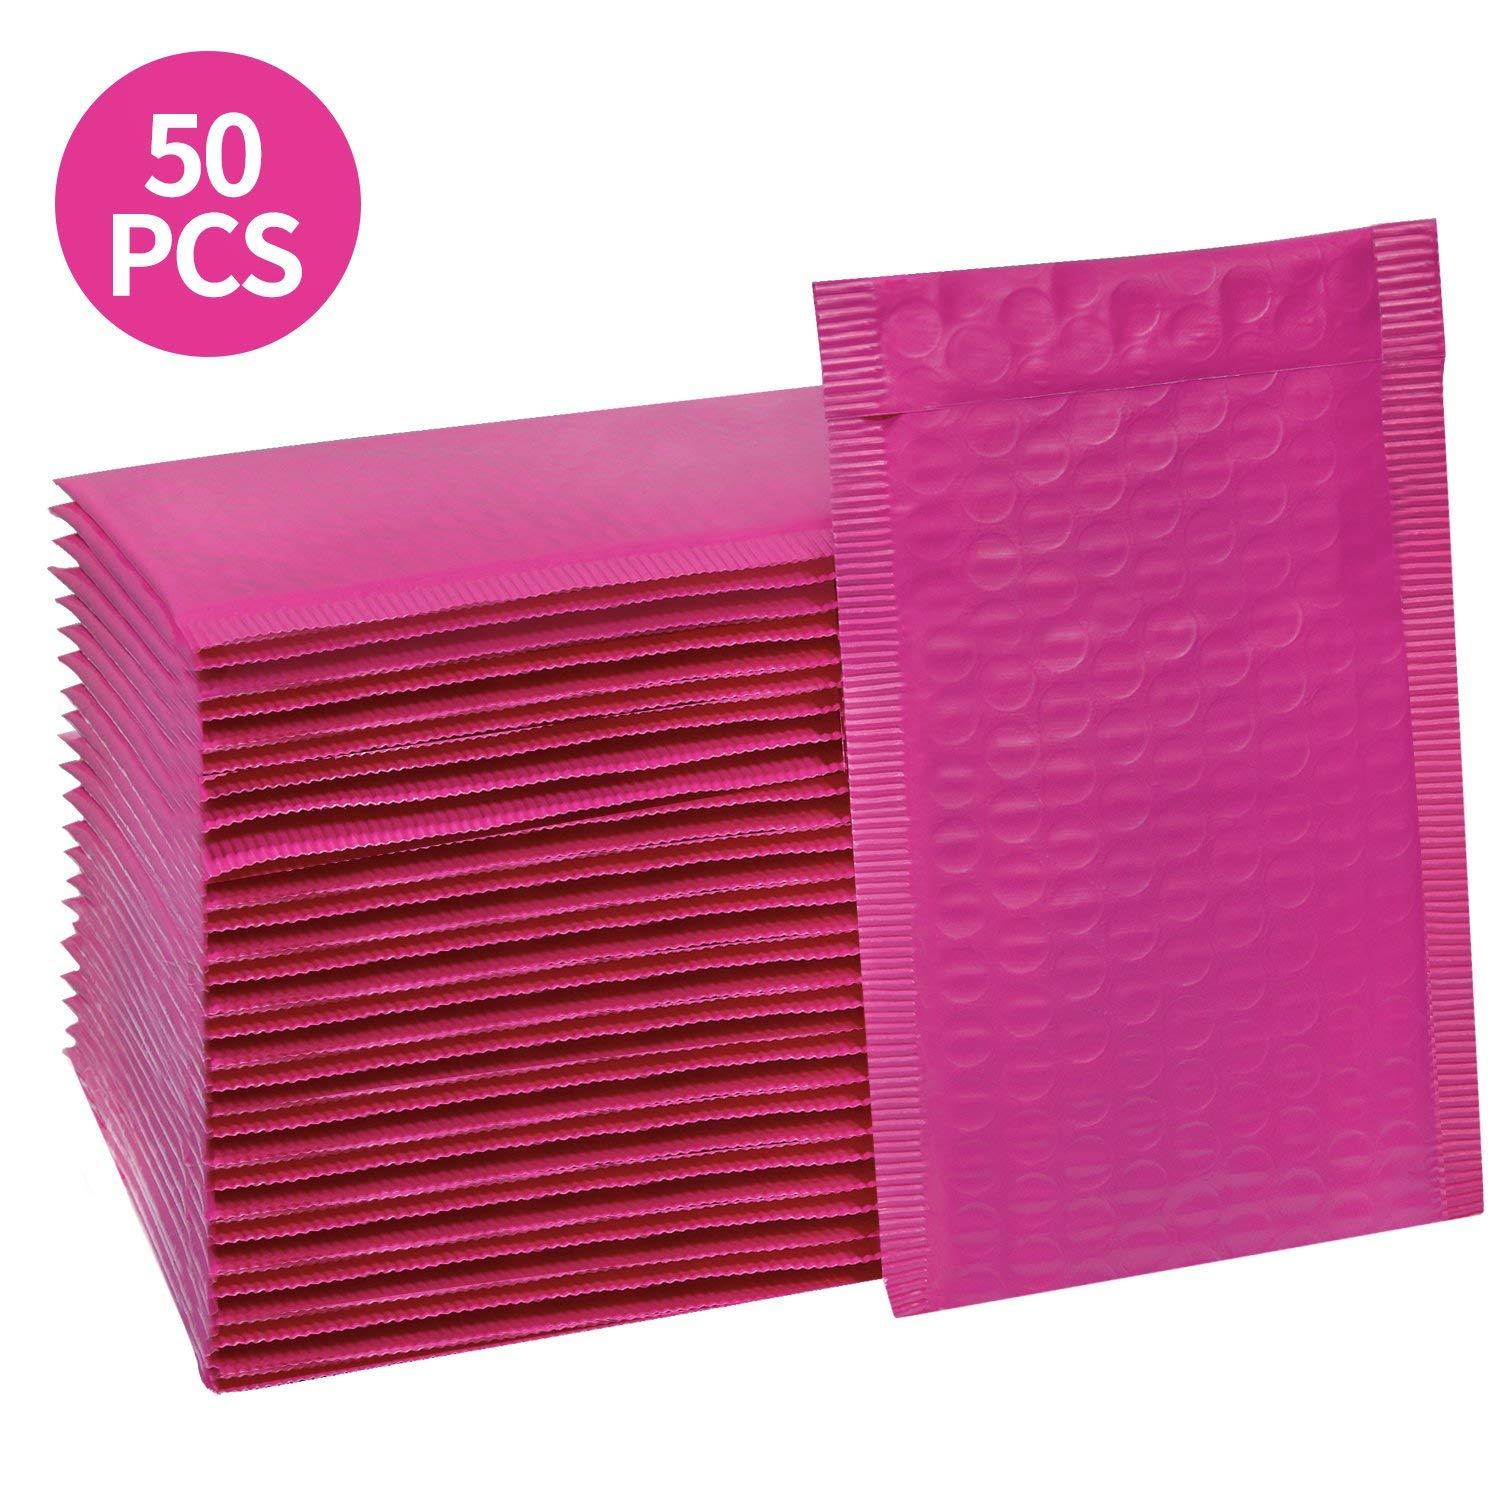 Hot Pink Padded Envelopes, Pack of 50 as low as $5.93!